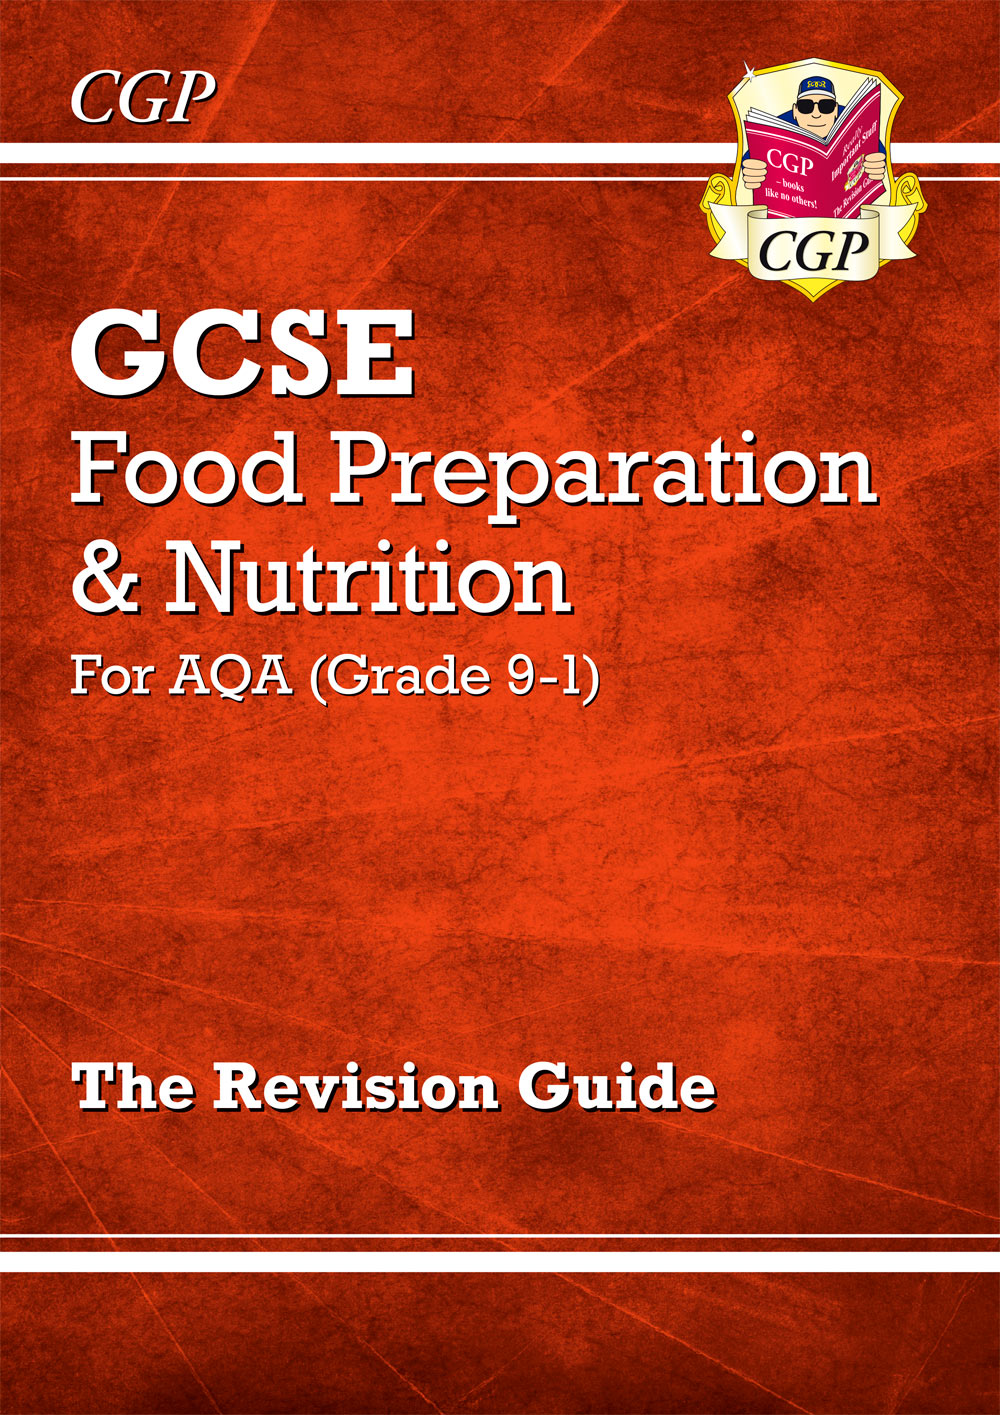 FNAR41 - New Grade 9-1 GCSE Food Preparation & Nutrition - AQA Revision Guide